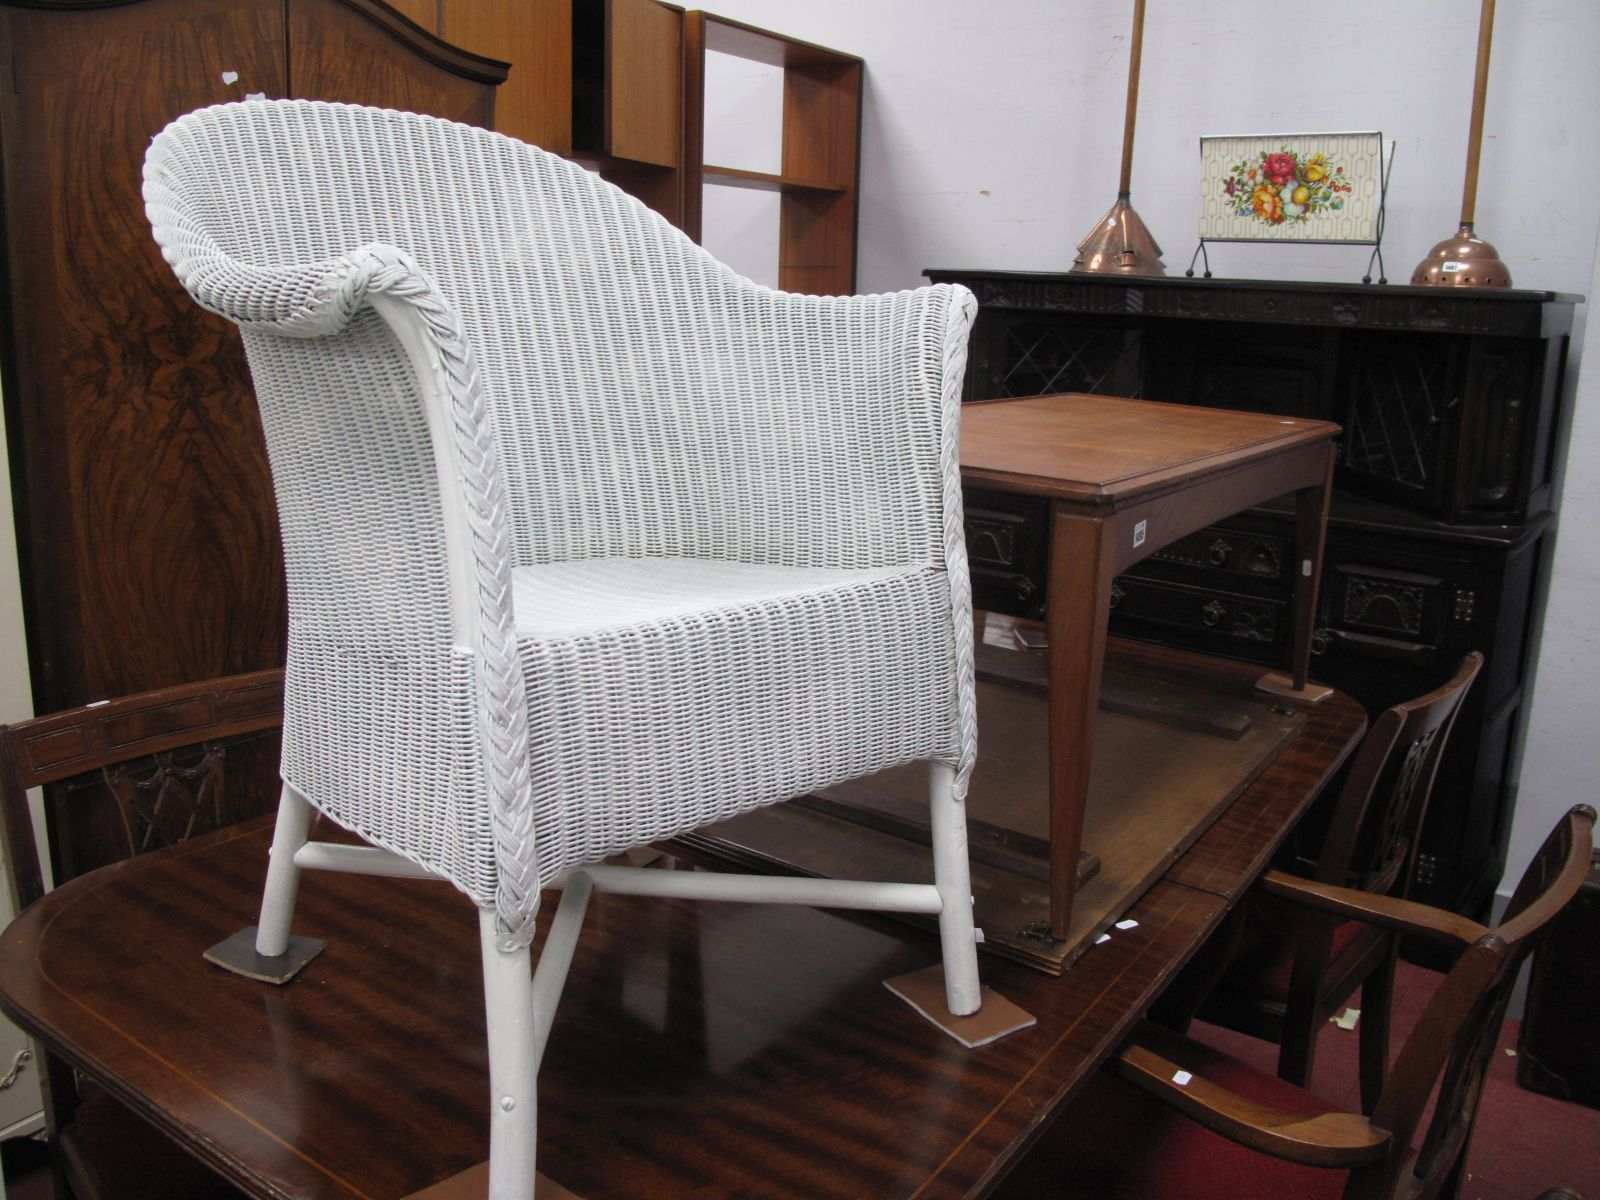 A Lloyd Loom Style White Painted Chair, together with a teak rectangular shaped coffee table (